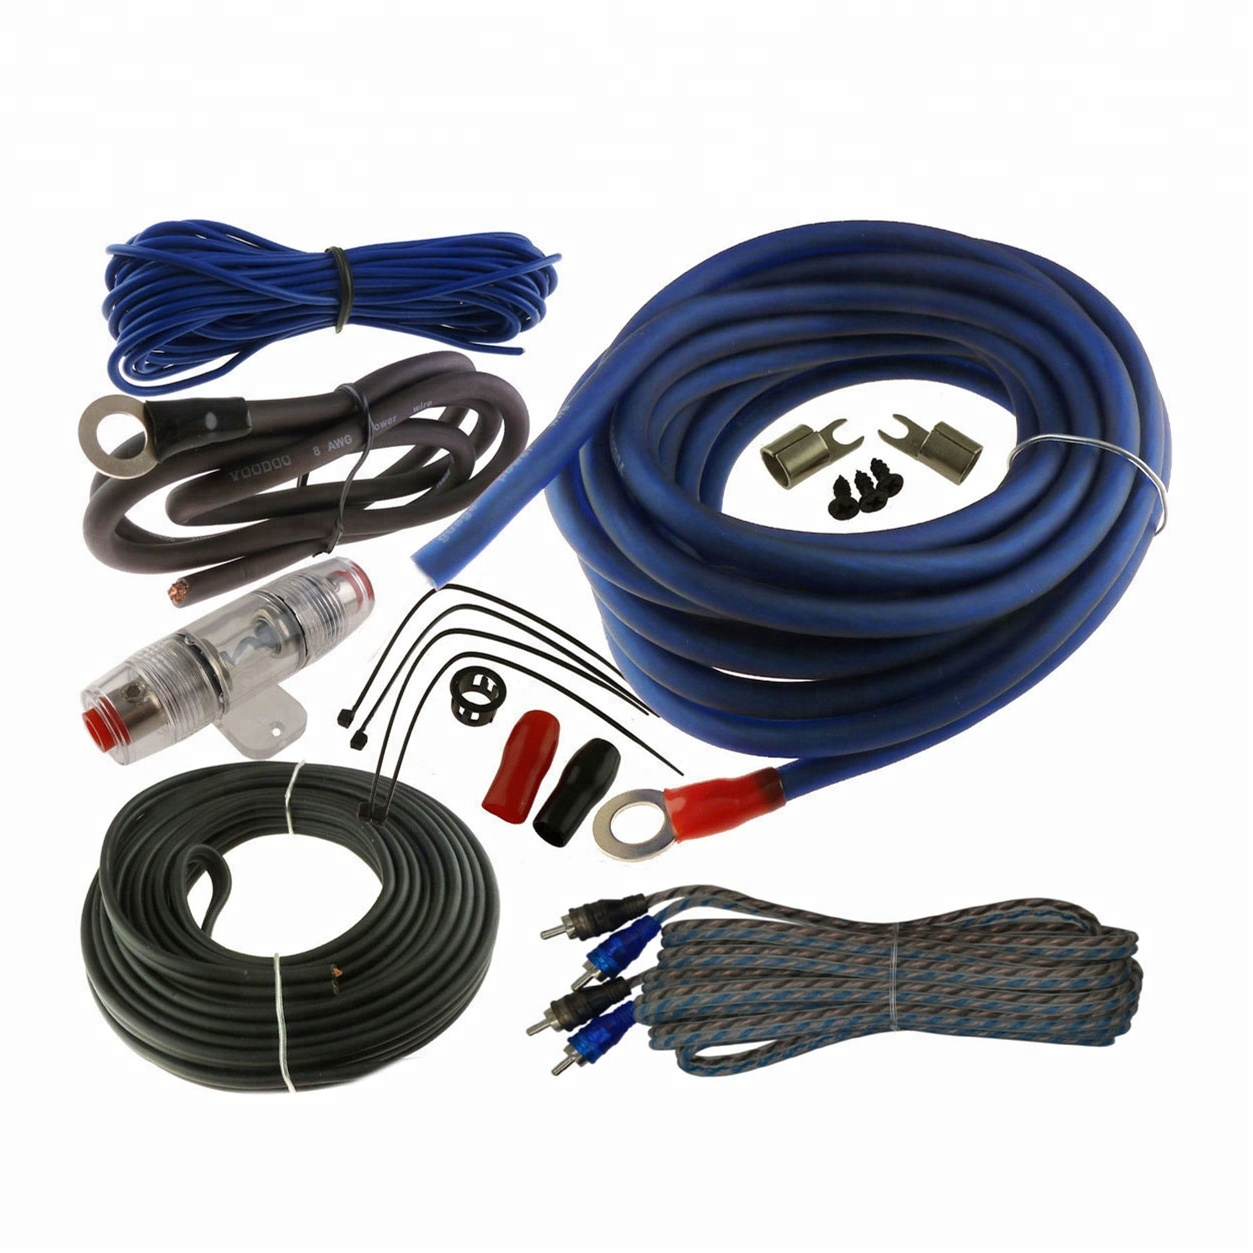 3000w 4 Gauge Amp Install Wiring Kit 4 Awg Amplifier Installation Cable on pt cruiser car kit, amp cable, amp installation kit, car amp kit, amp connectors, amp wire kit, amp install kit,